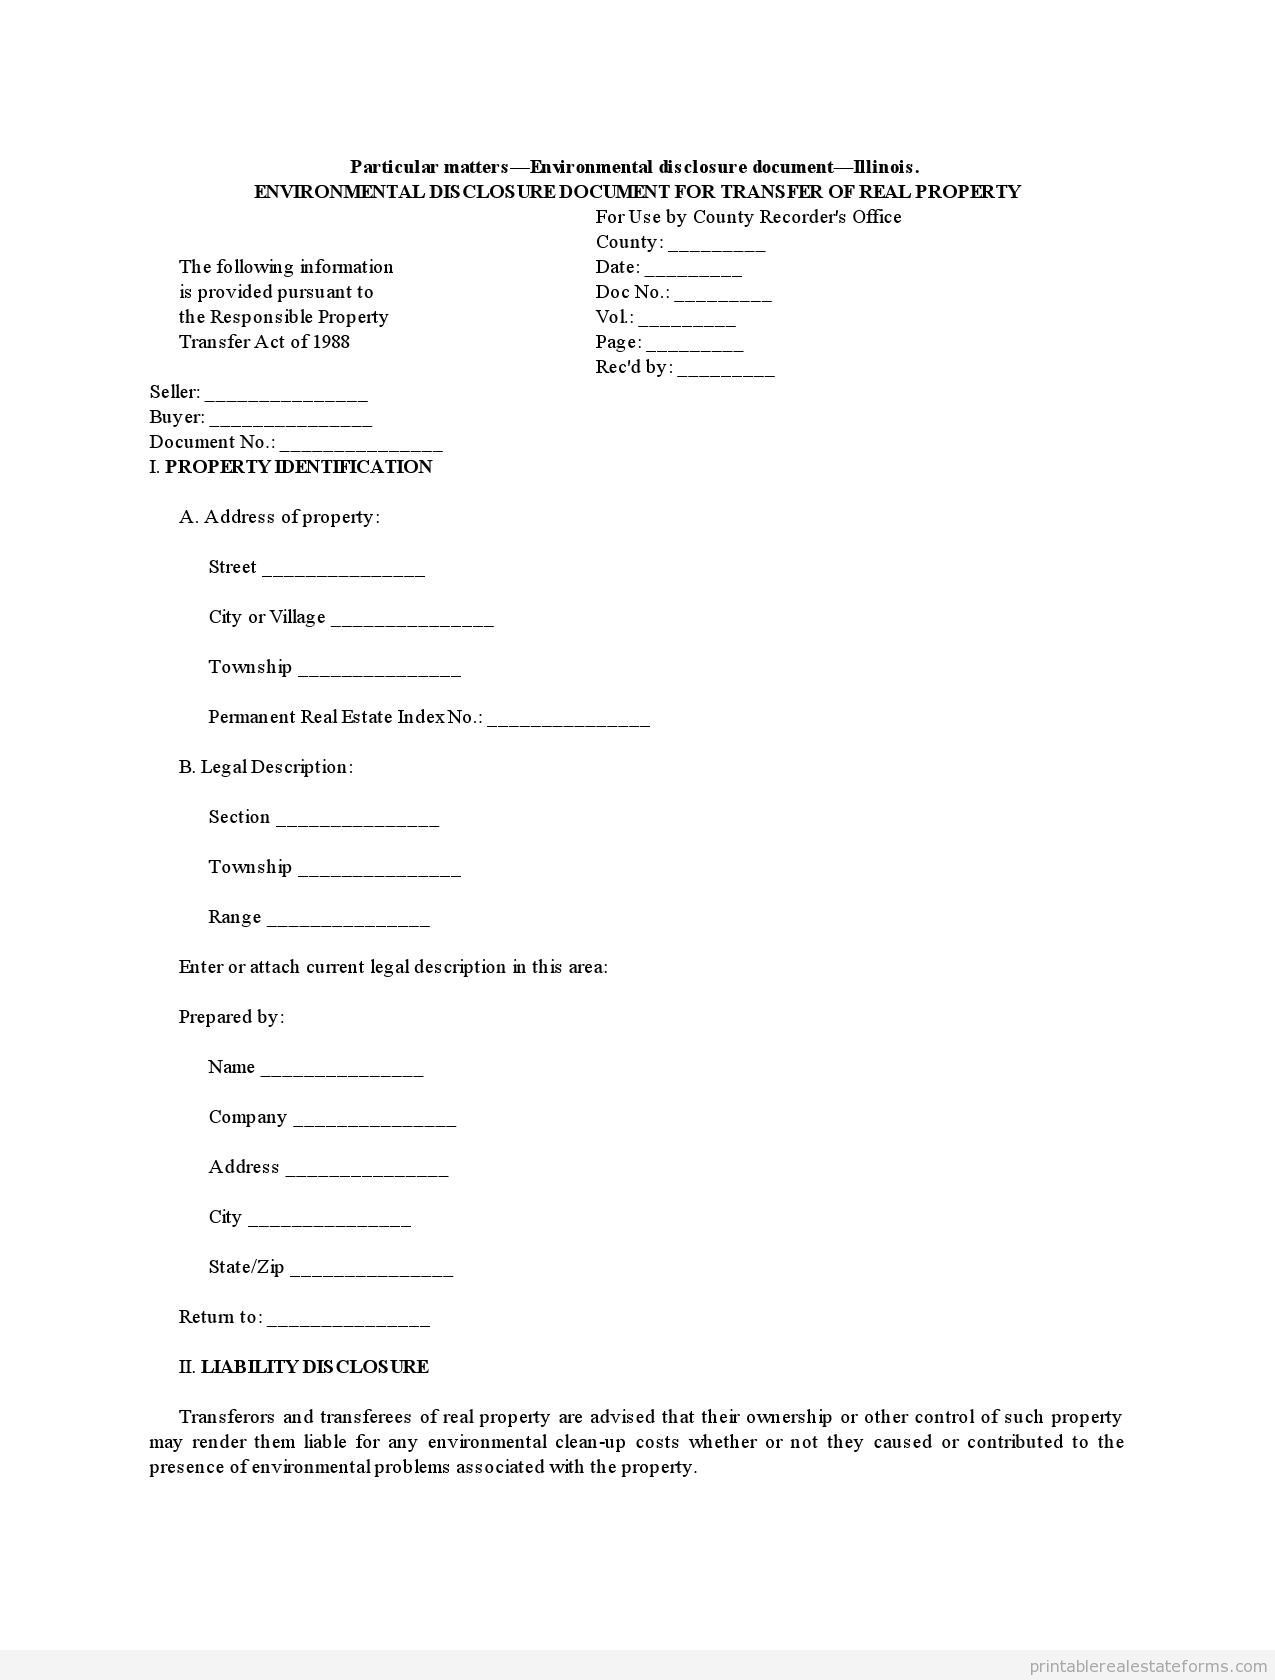 Printable Illinois Environmental Disclosure Document For Transfer